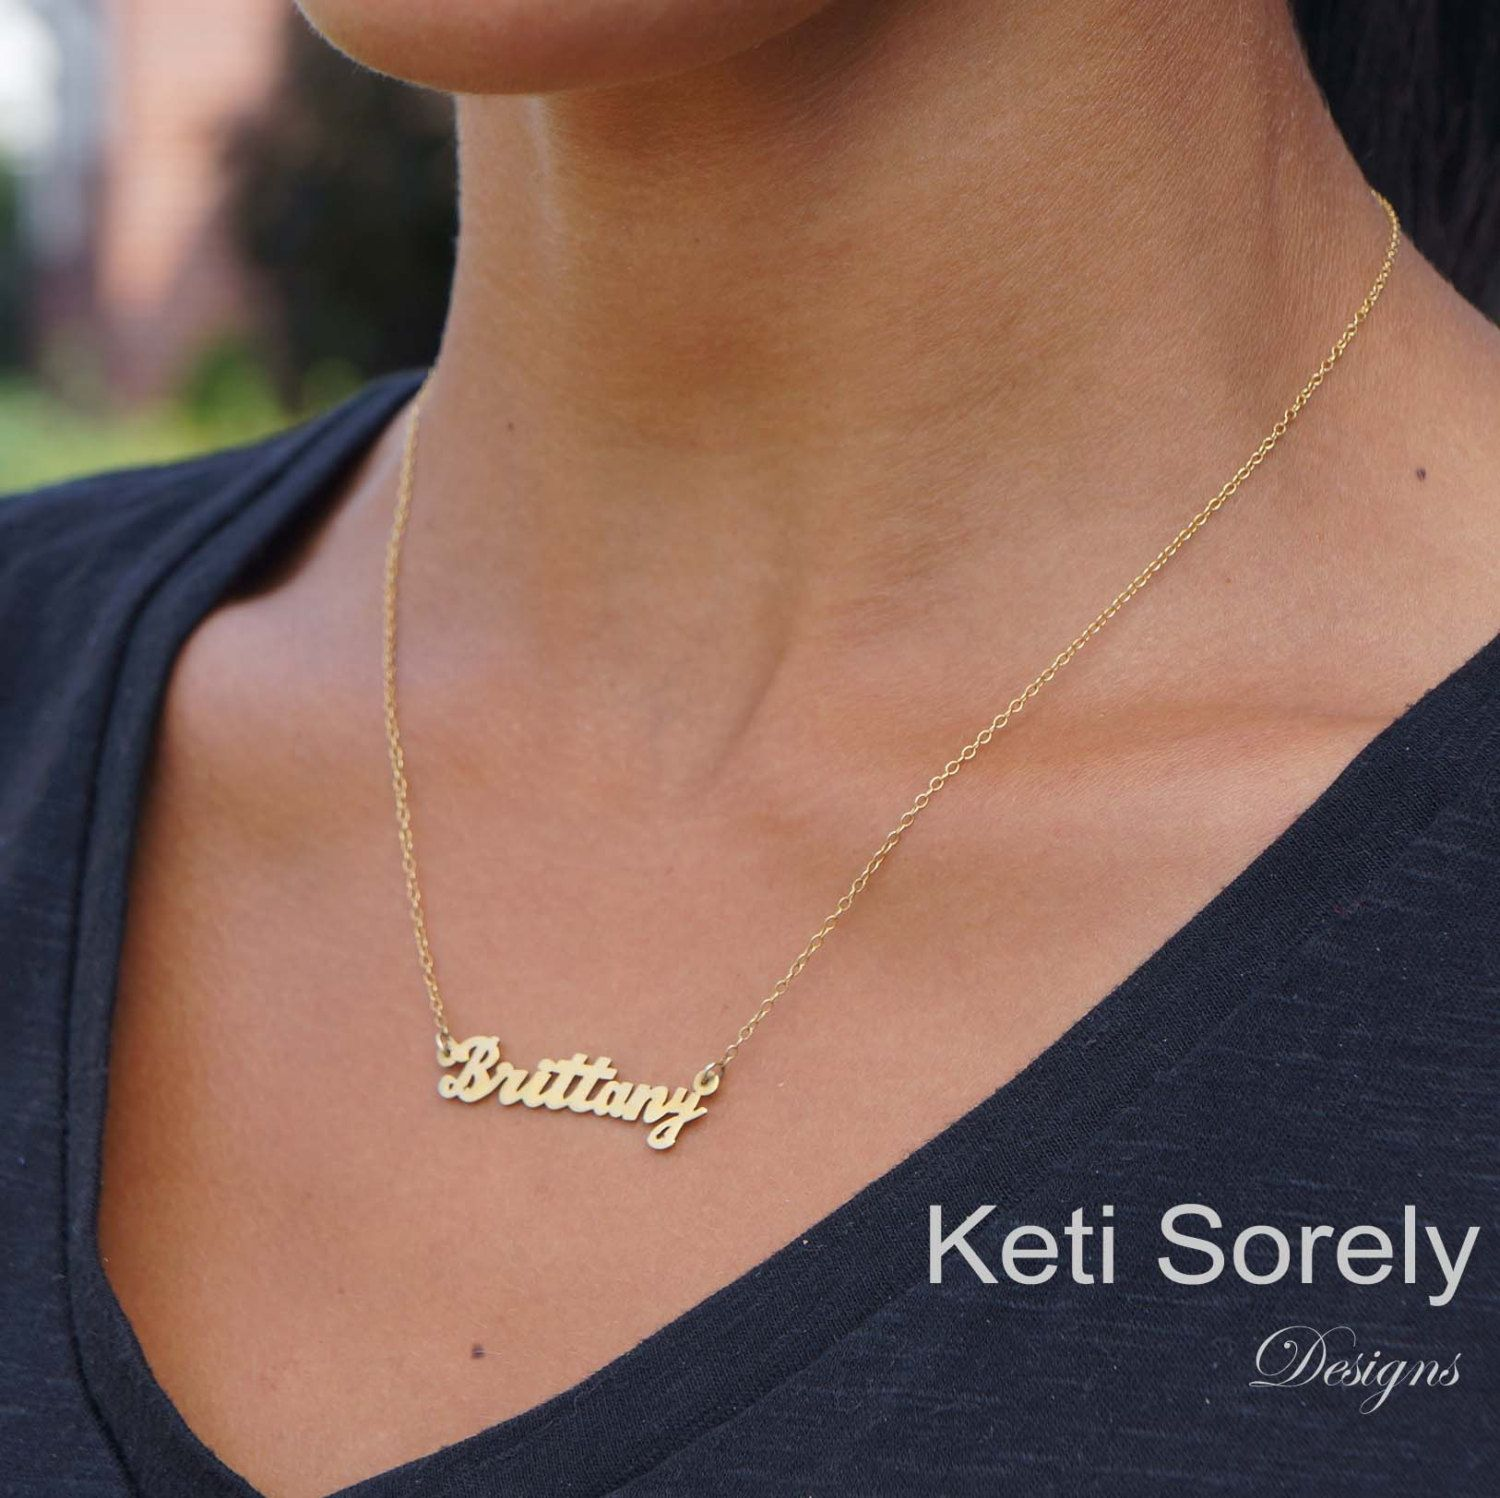 Personalized Name Necklace Customize It With Your Name Etsy Necklace Nameplate Necklace Name Necklace